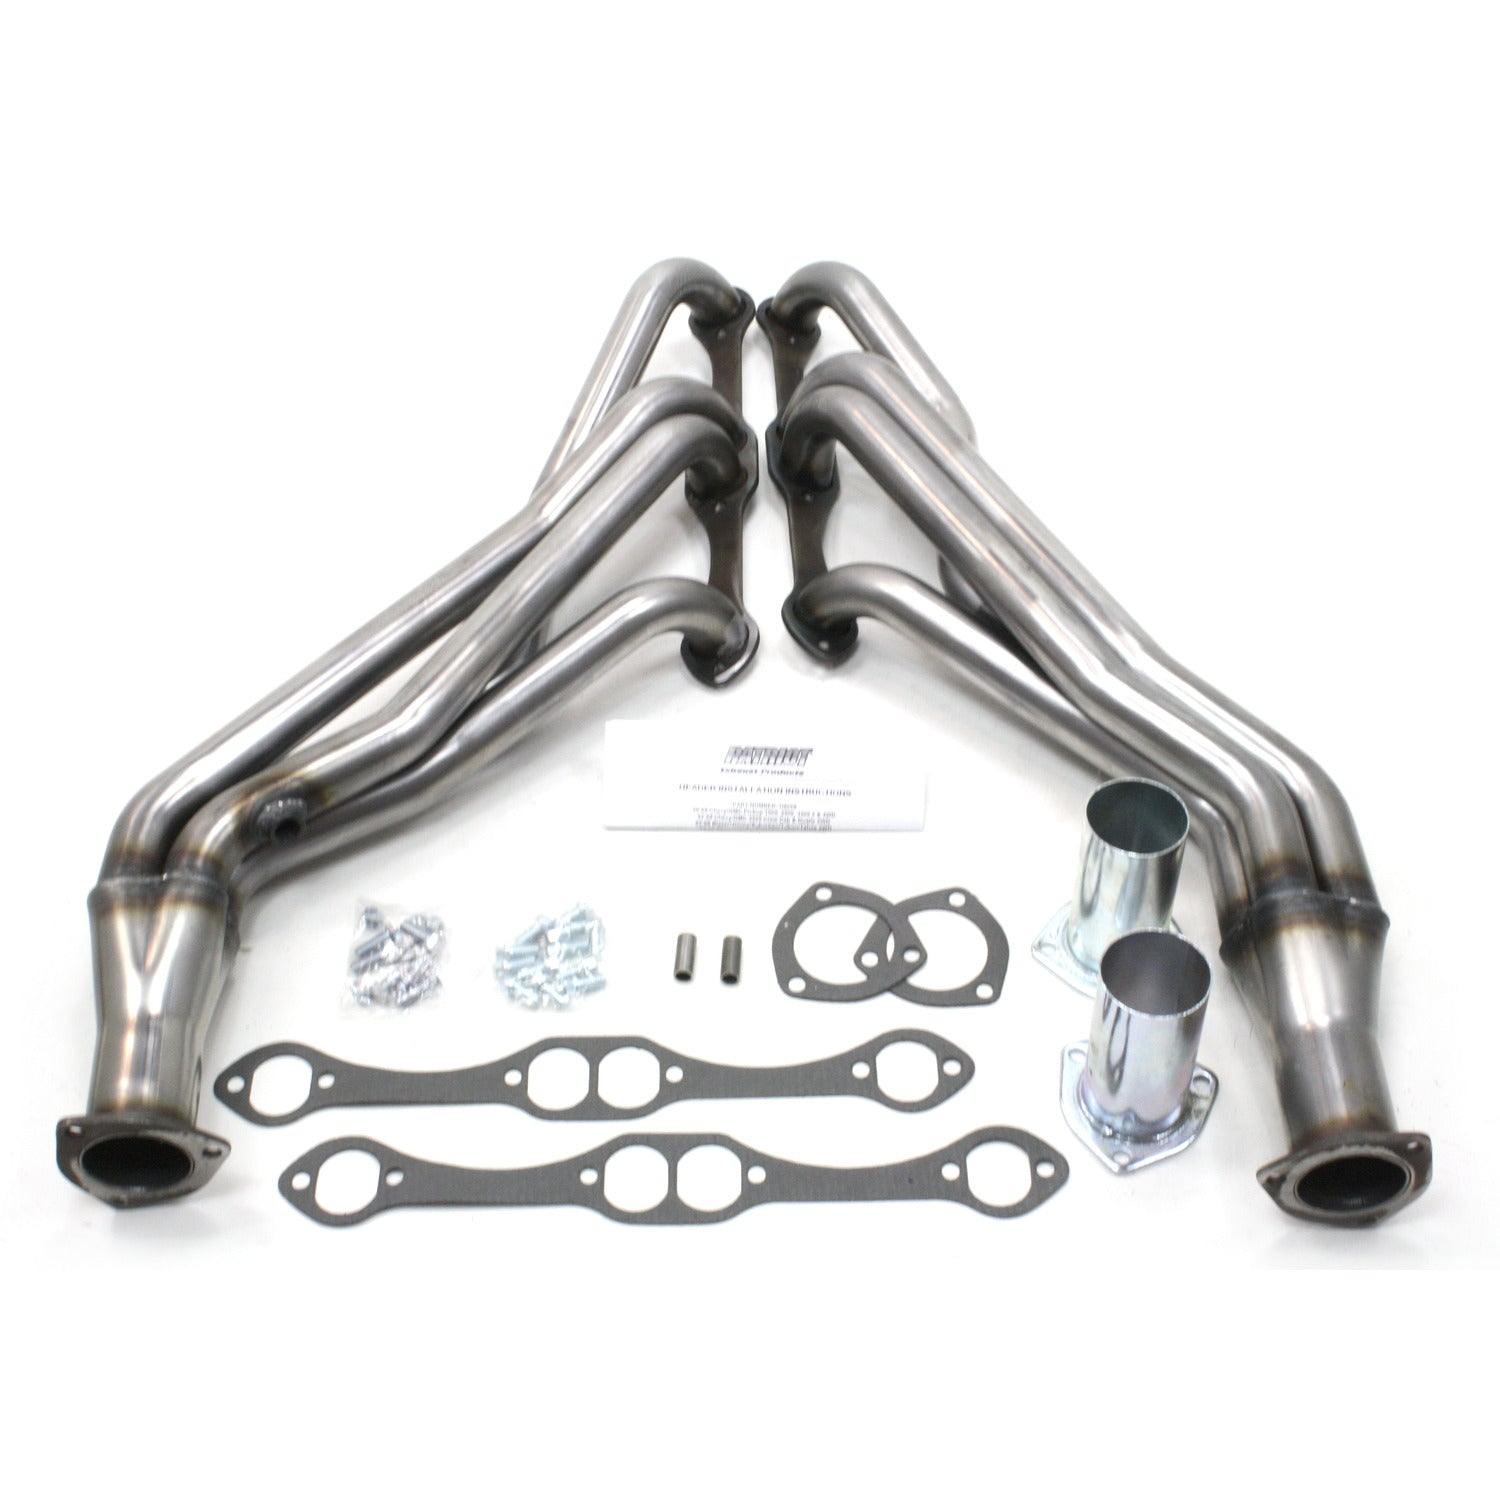 "Patriot Exhaust H8059 1 5/8"" Header Truck Small Block Chevrolet 2/4 Wheel Drive 88-98 Raw Steel"